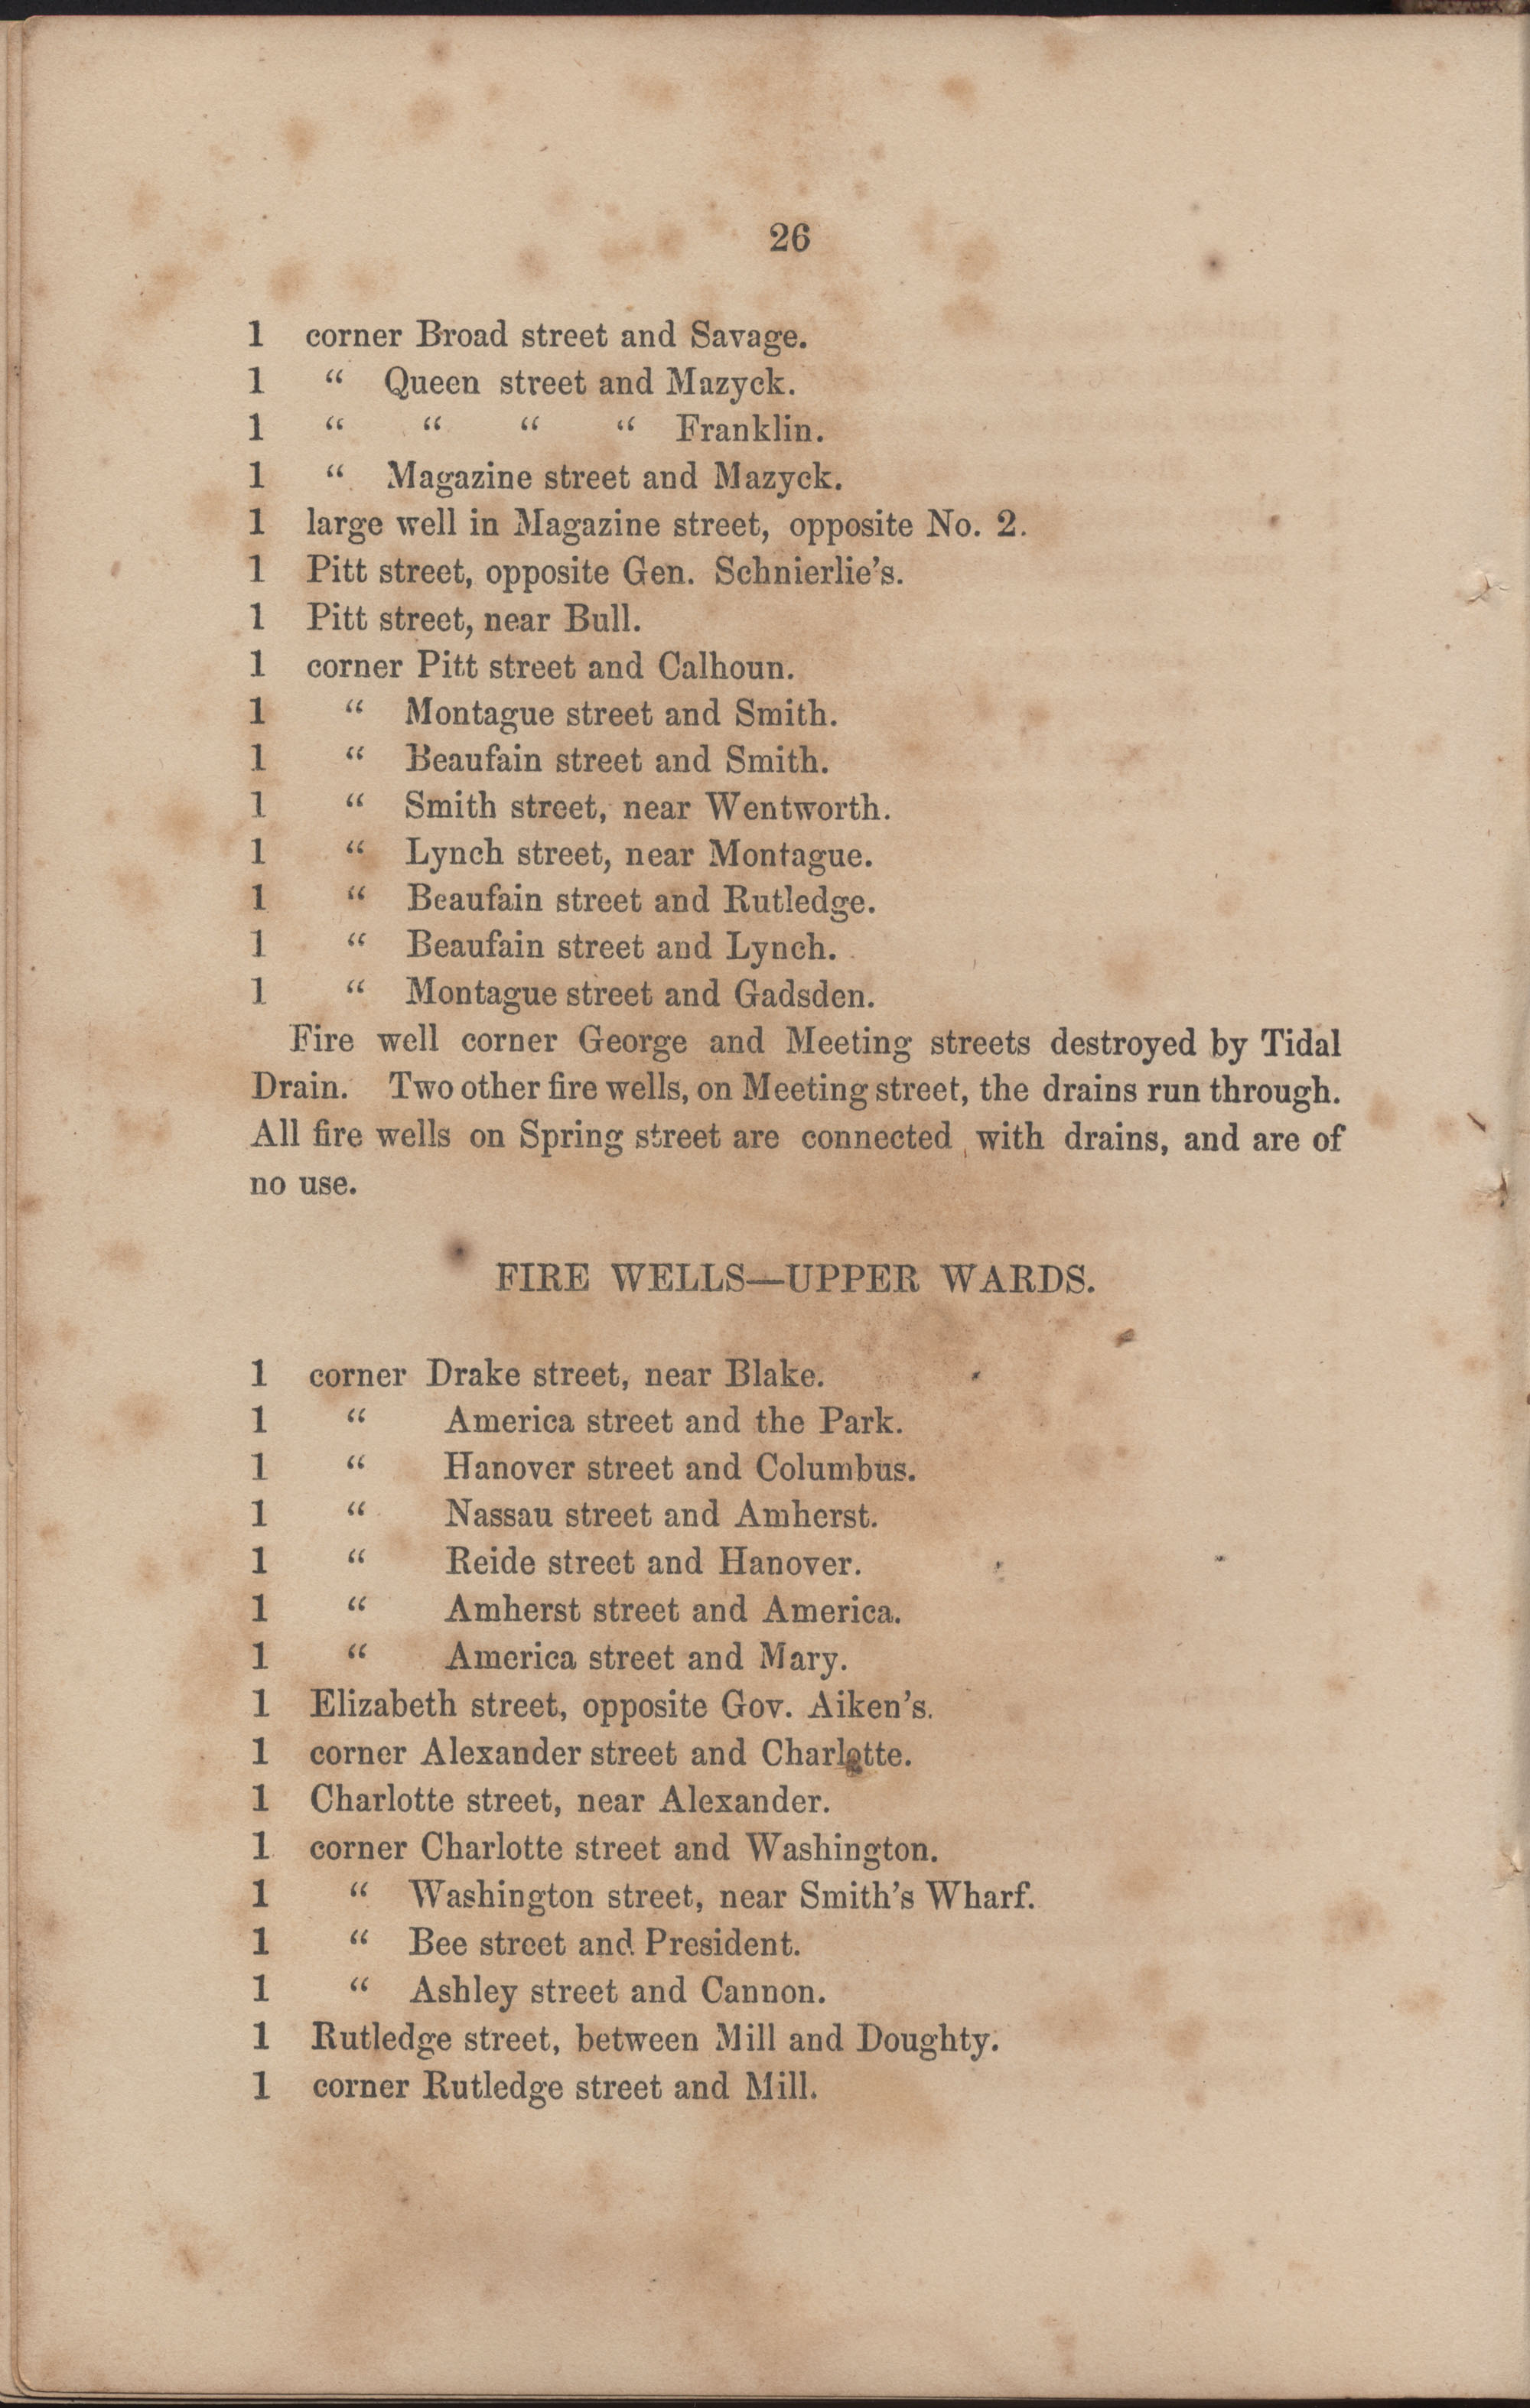 Annual Report of the Chief of the Fire Department of the City of Charleston, page 87